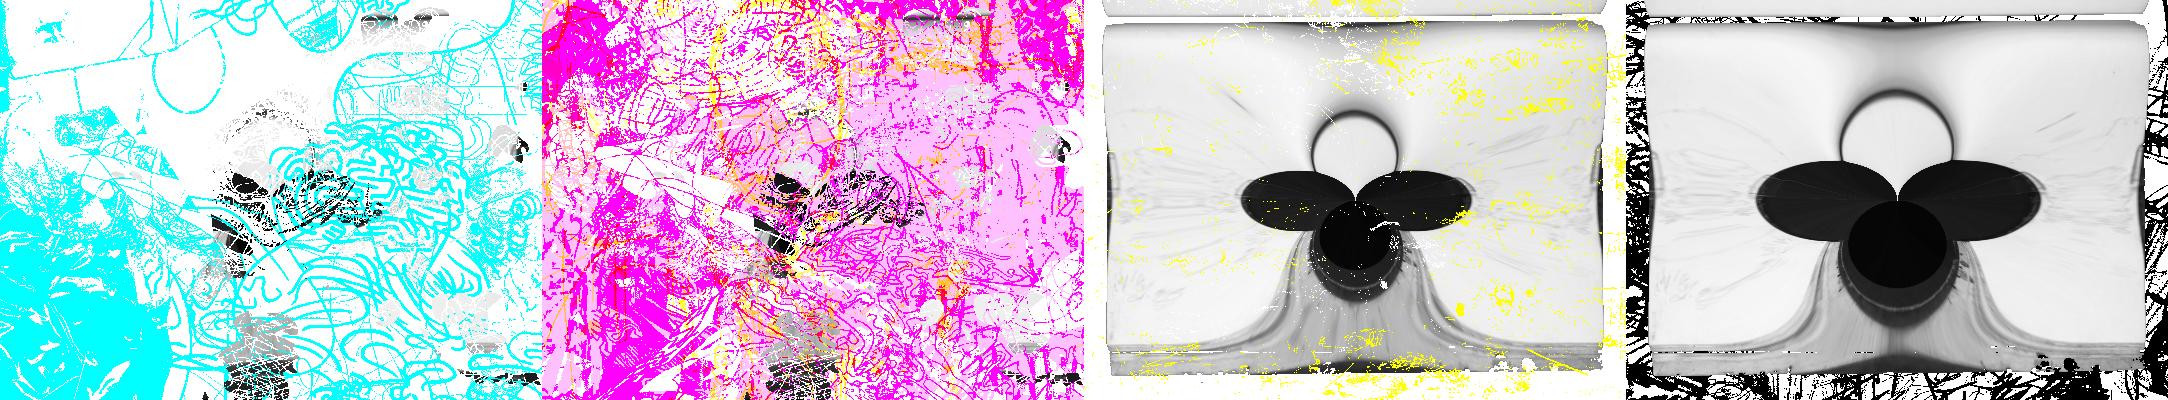 city_wall,_village,_bowl,_monastery--28715-62288-8179-57533.jpg